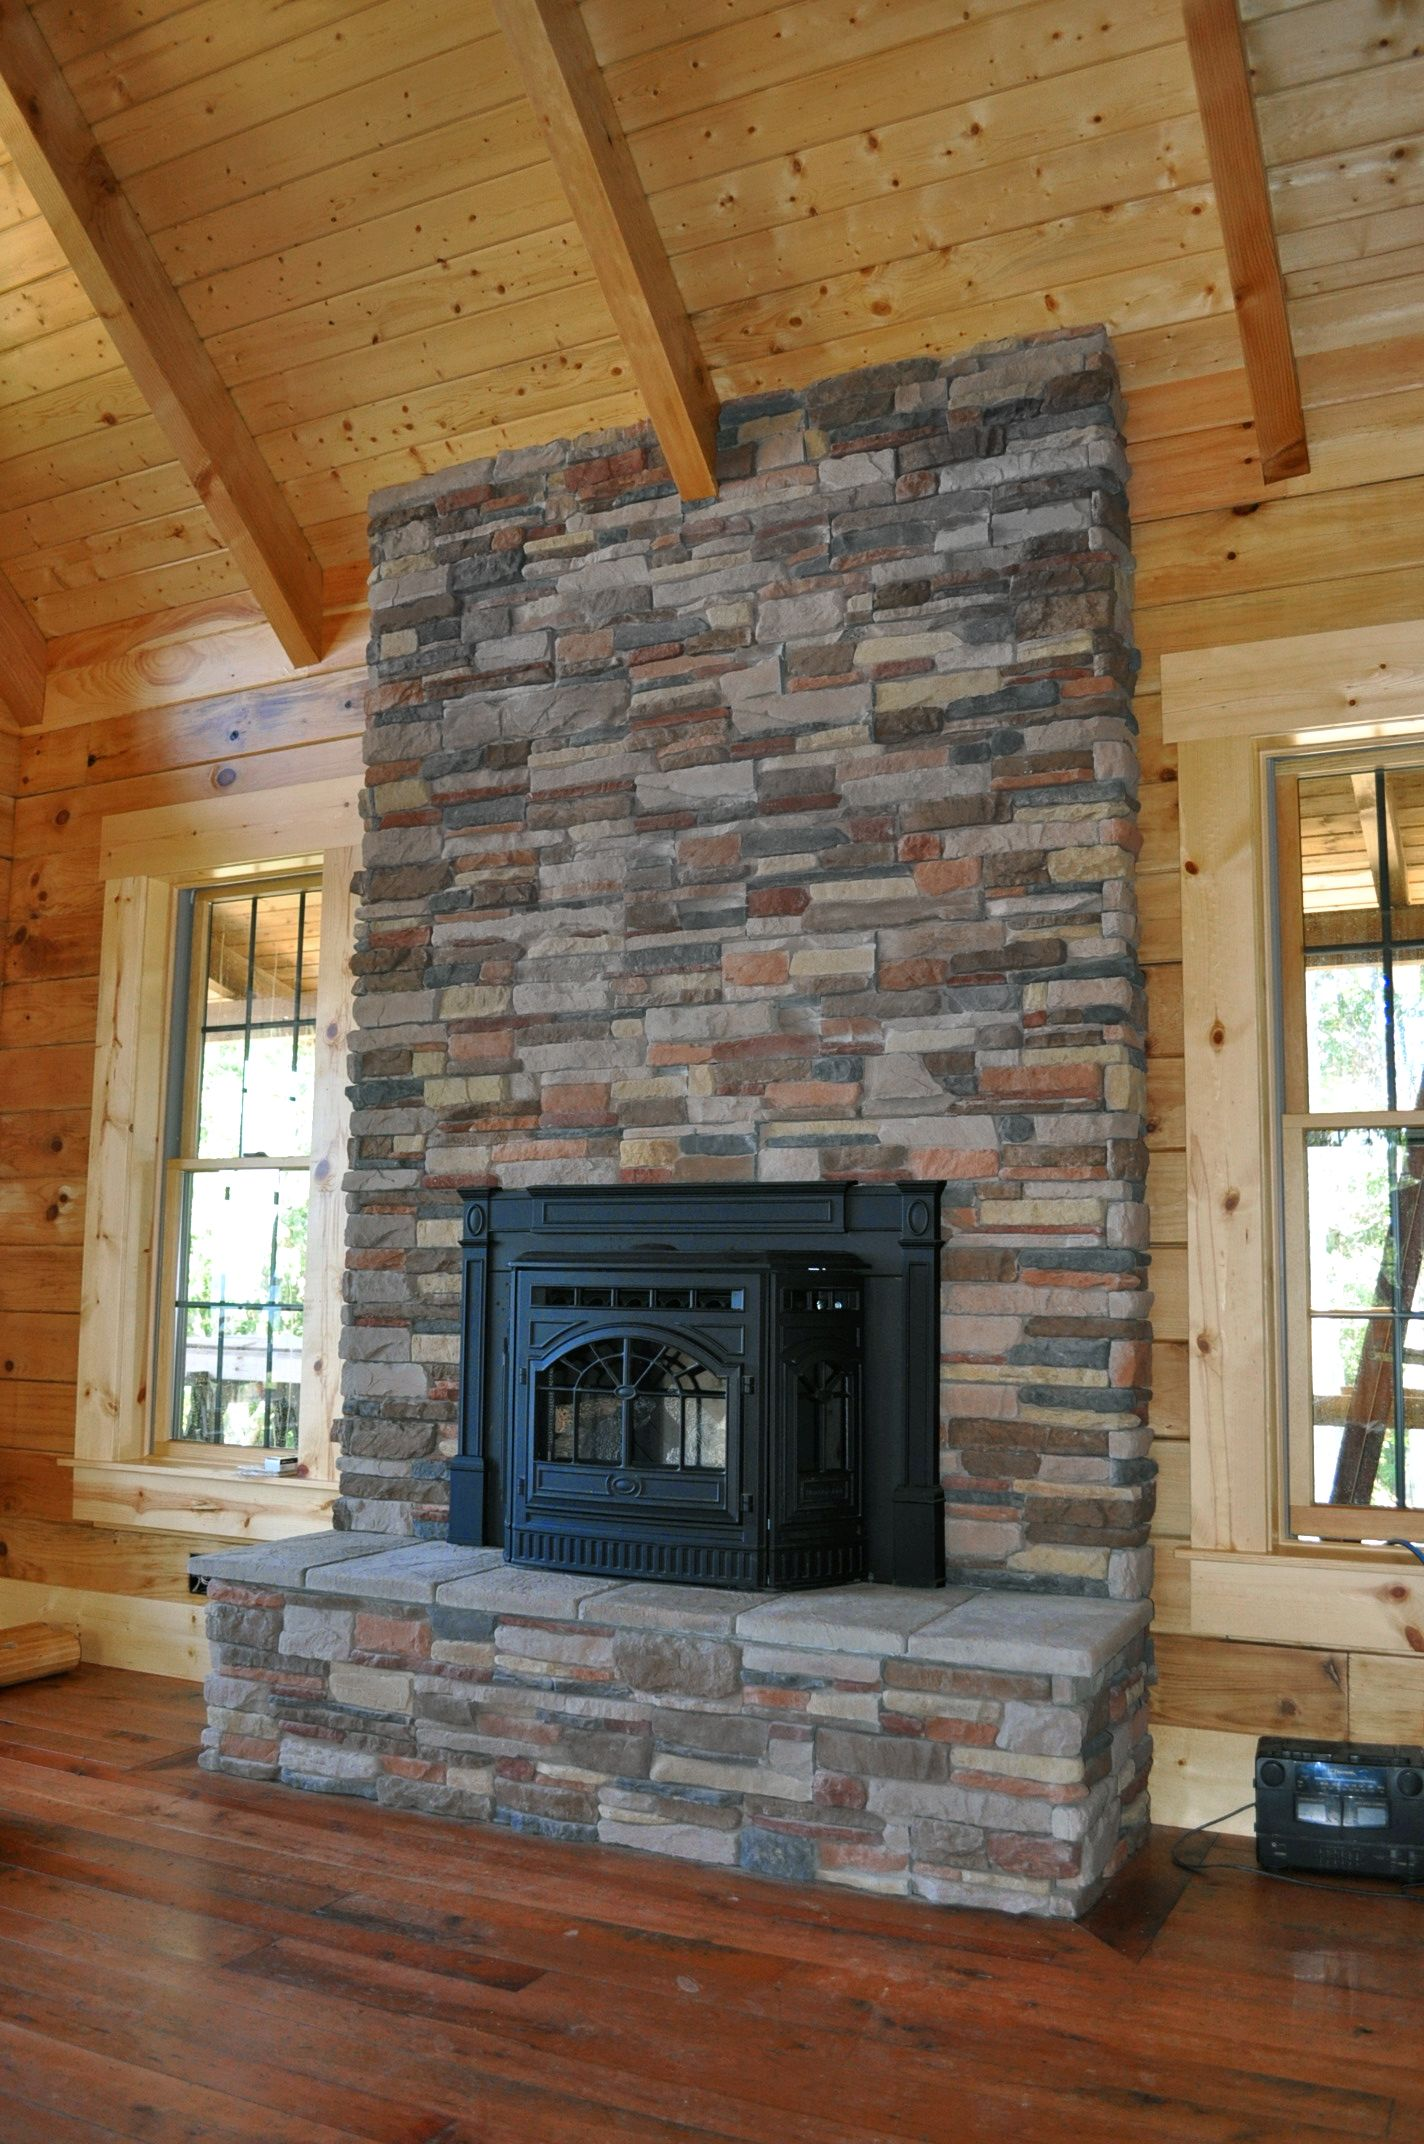 Fireplace Rocks New M Rocks P Series aspen Ledge Stone Fireplace with Images